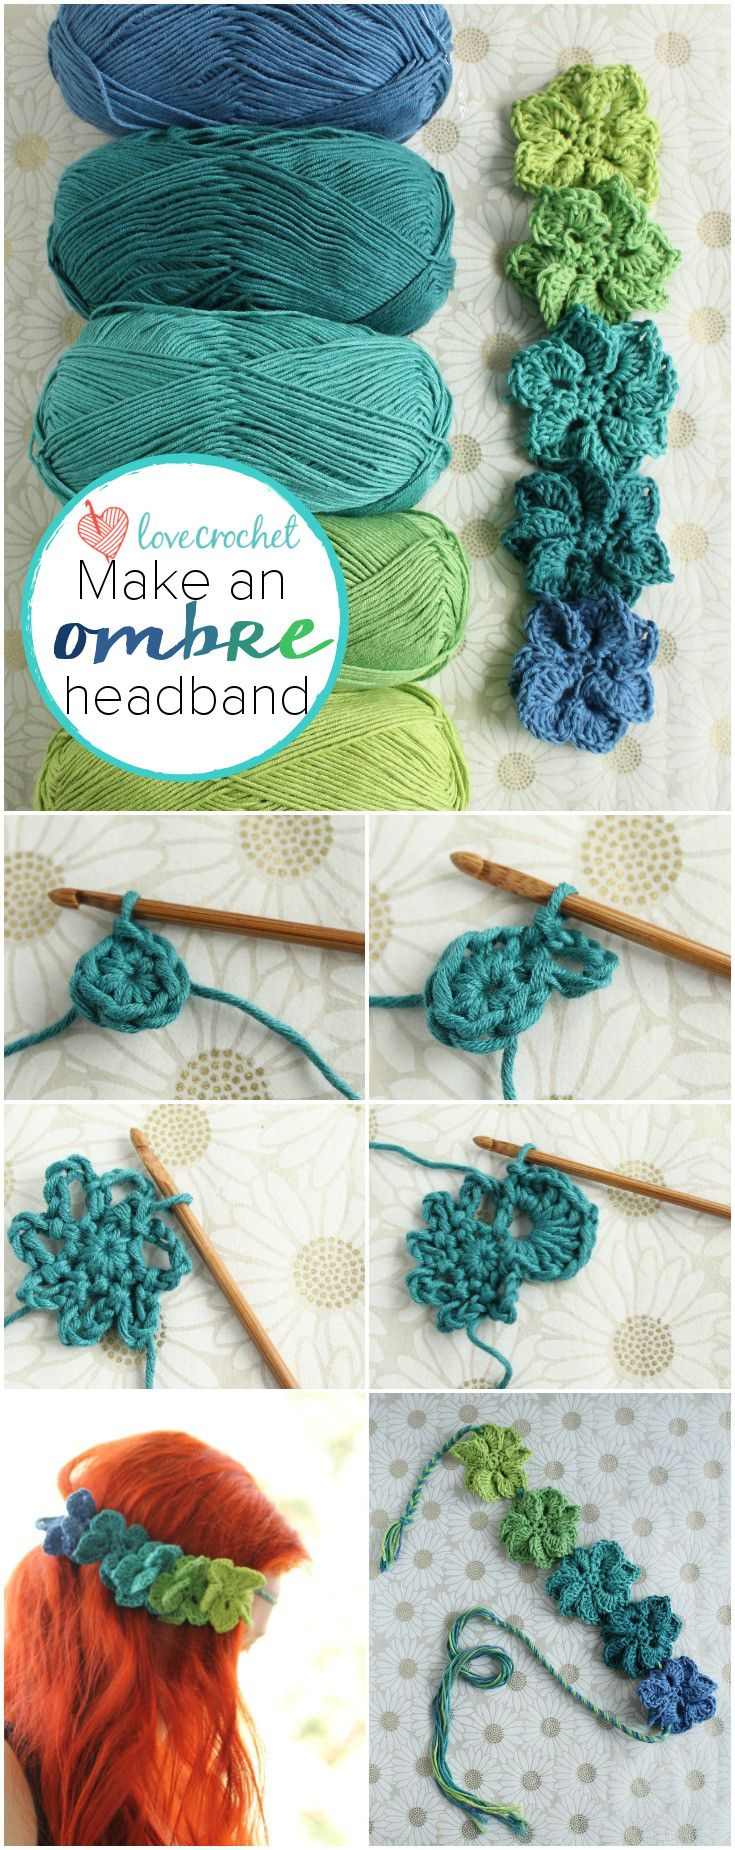 Free ombre headband tutorial on LoveCrochet for the summer festival season